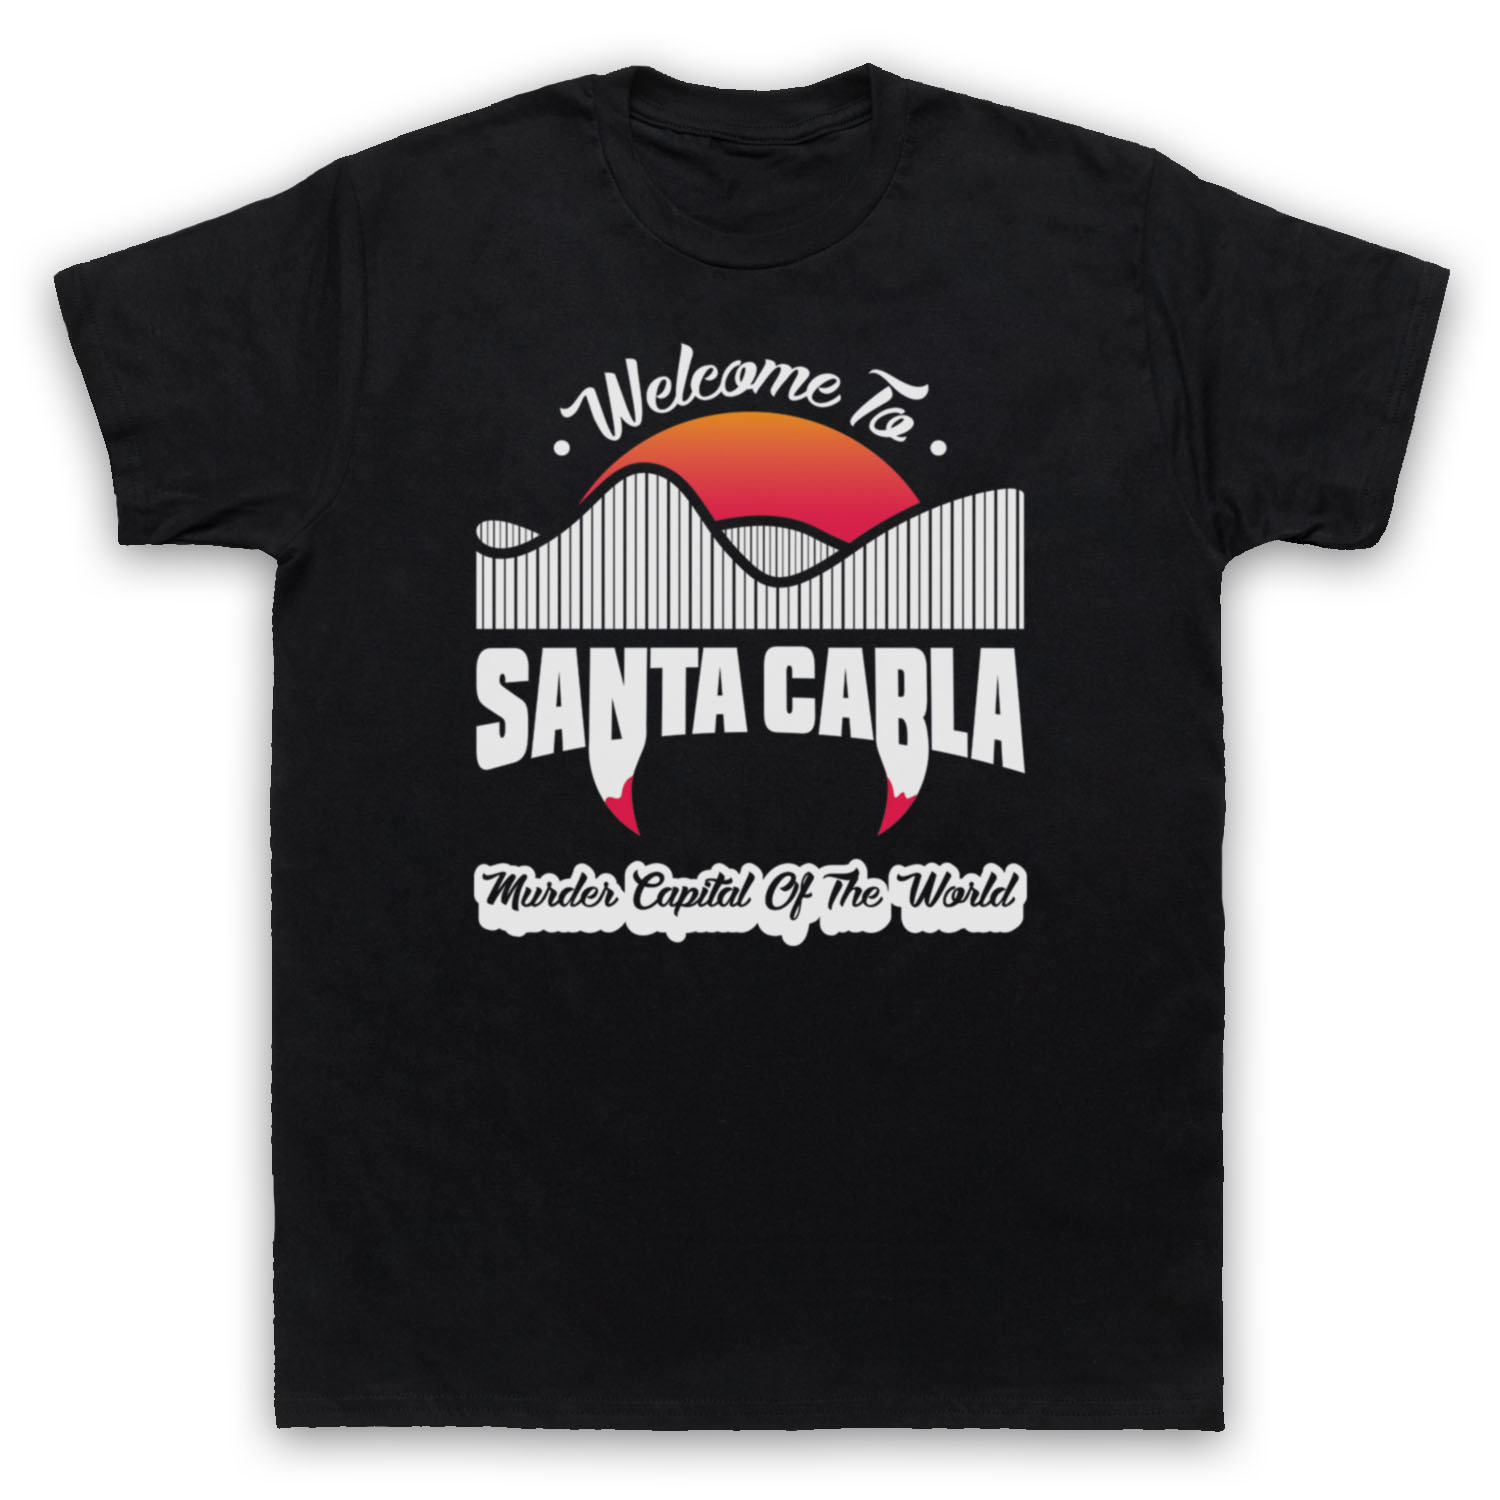 Trend Websites Welcome To Santa Carla Murder Capital Of The World The Lost Boys T-shirts Men's Cotton O-Neck Tees